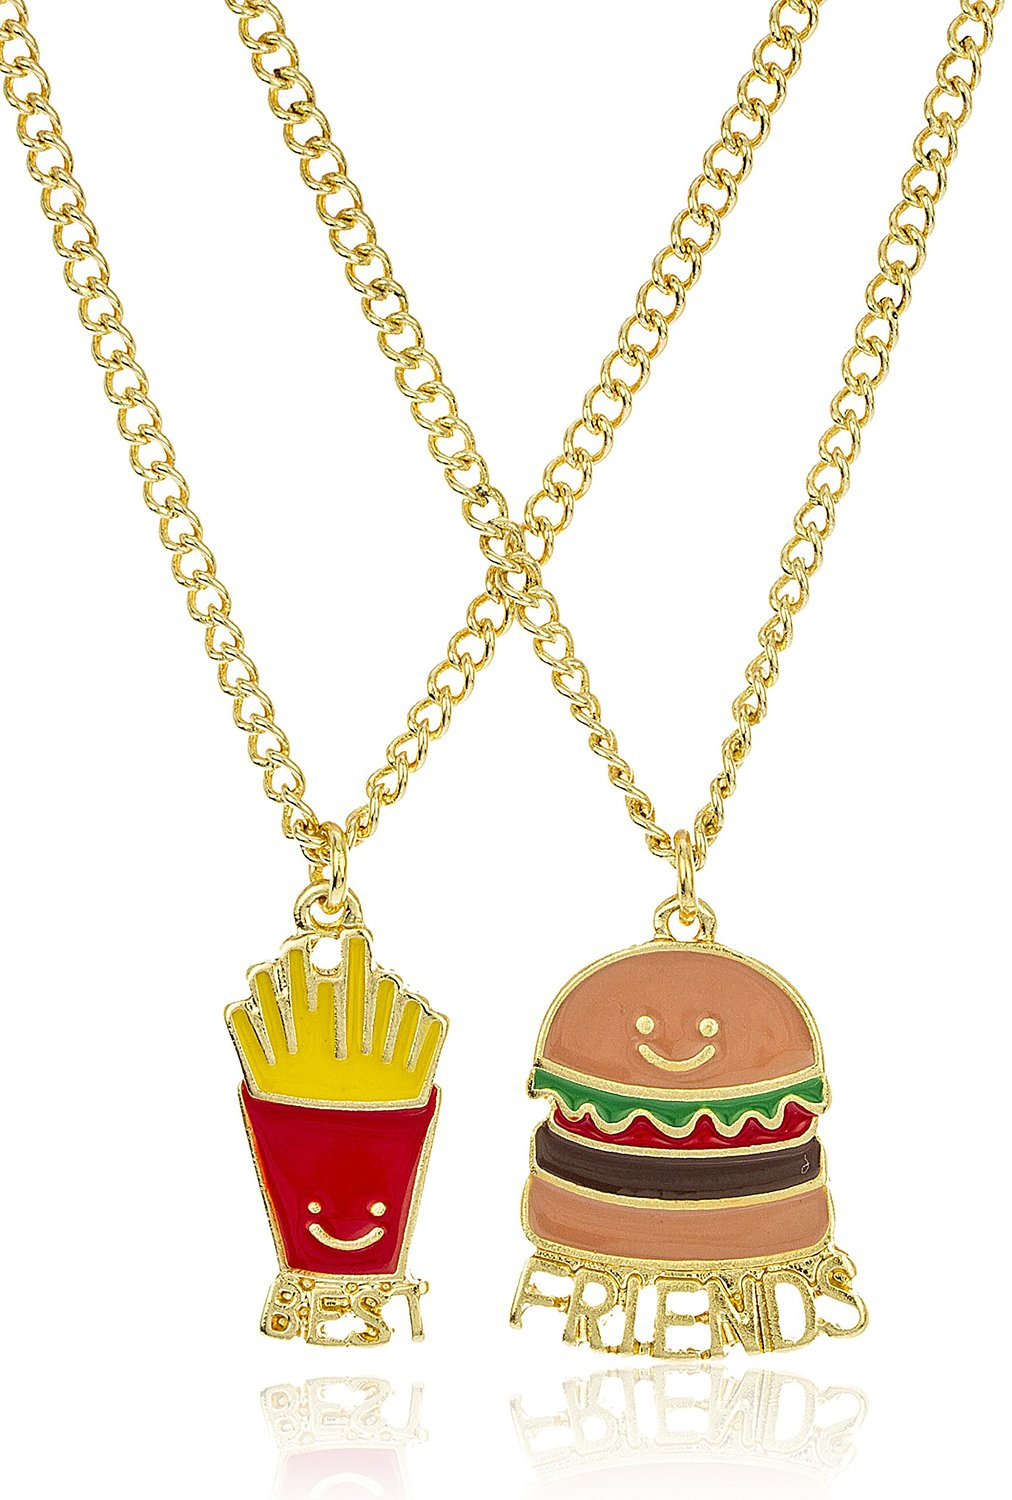 Burger and fries best friend necklaces for people who love food (and each other)